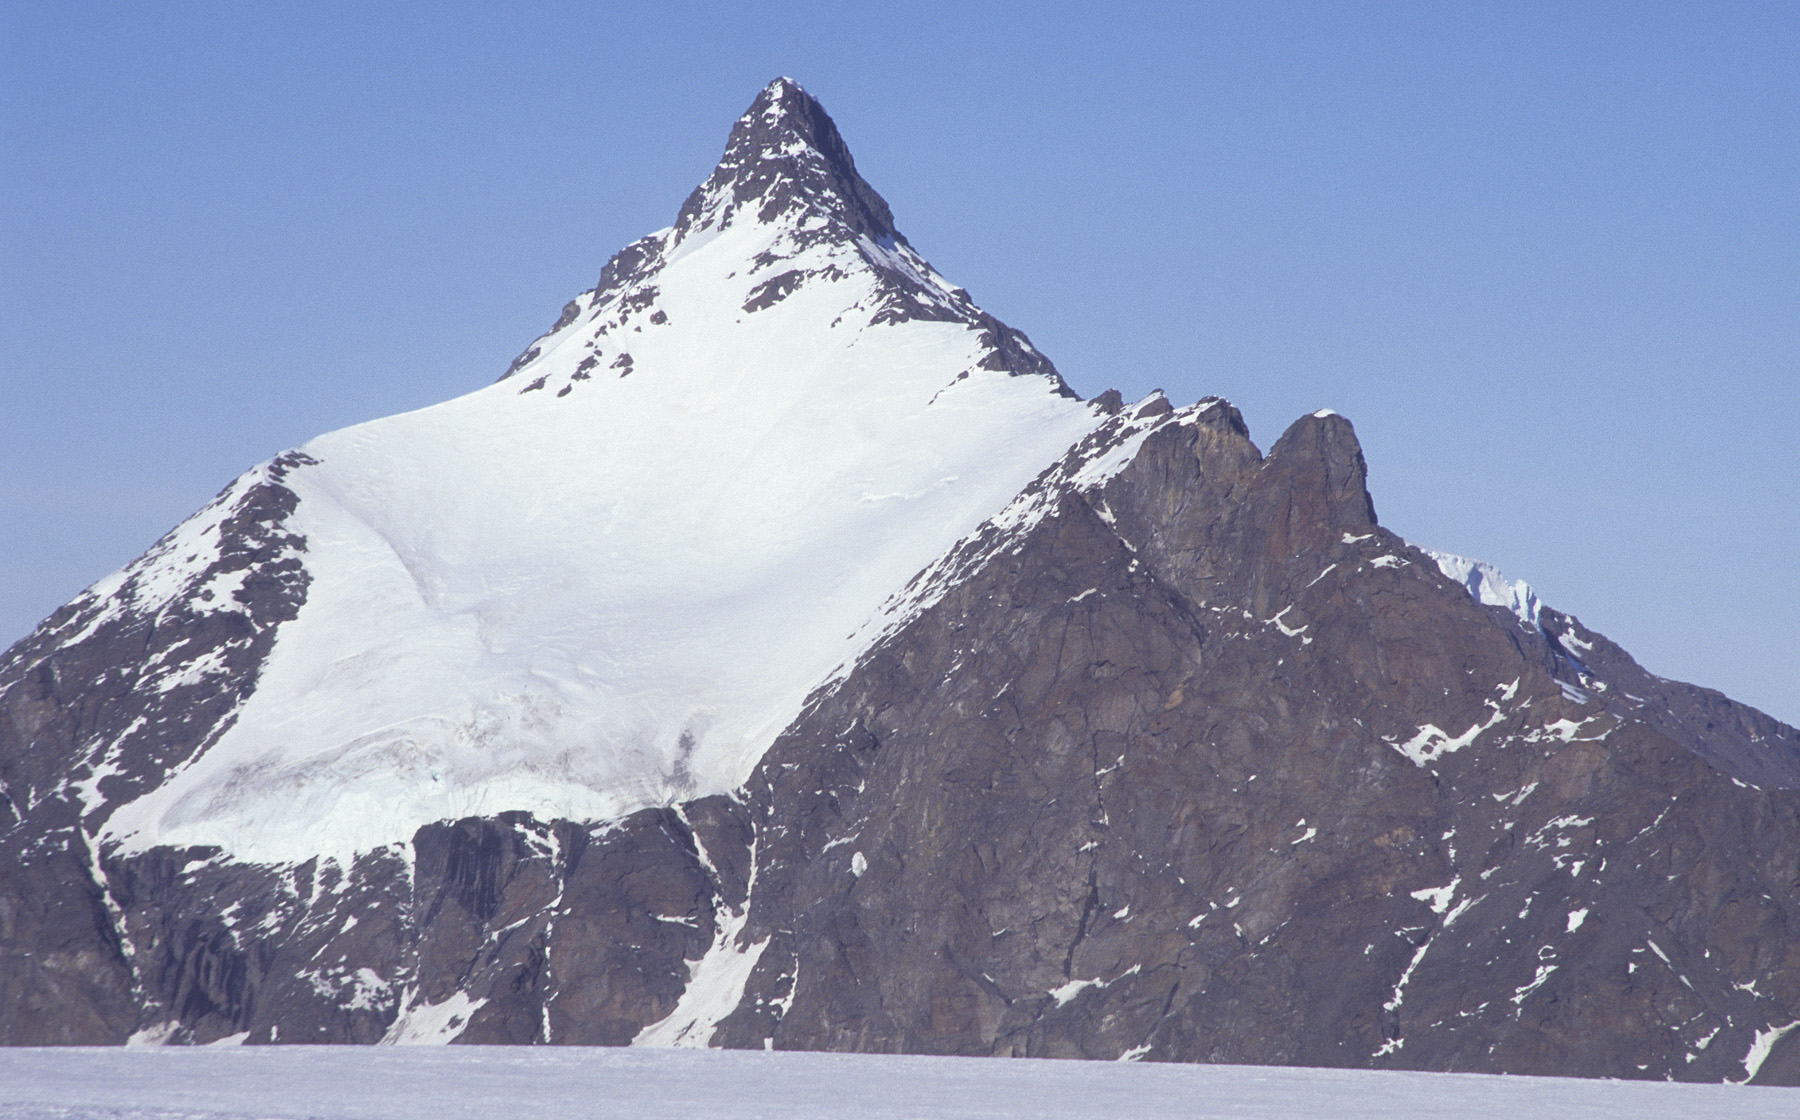 Arken (Ark) seen from a distance of eight kilometers to the northwest. The 2010 attempt ran across the south face, out of sight to the right.